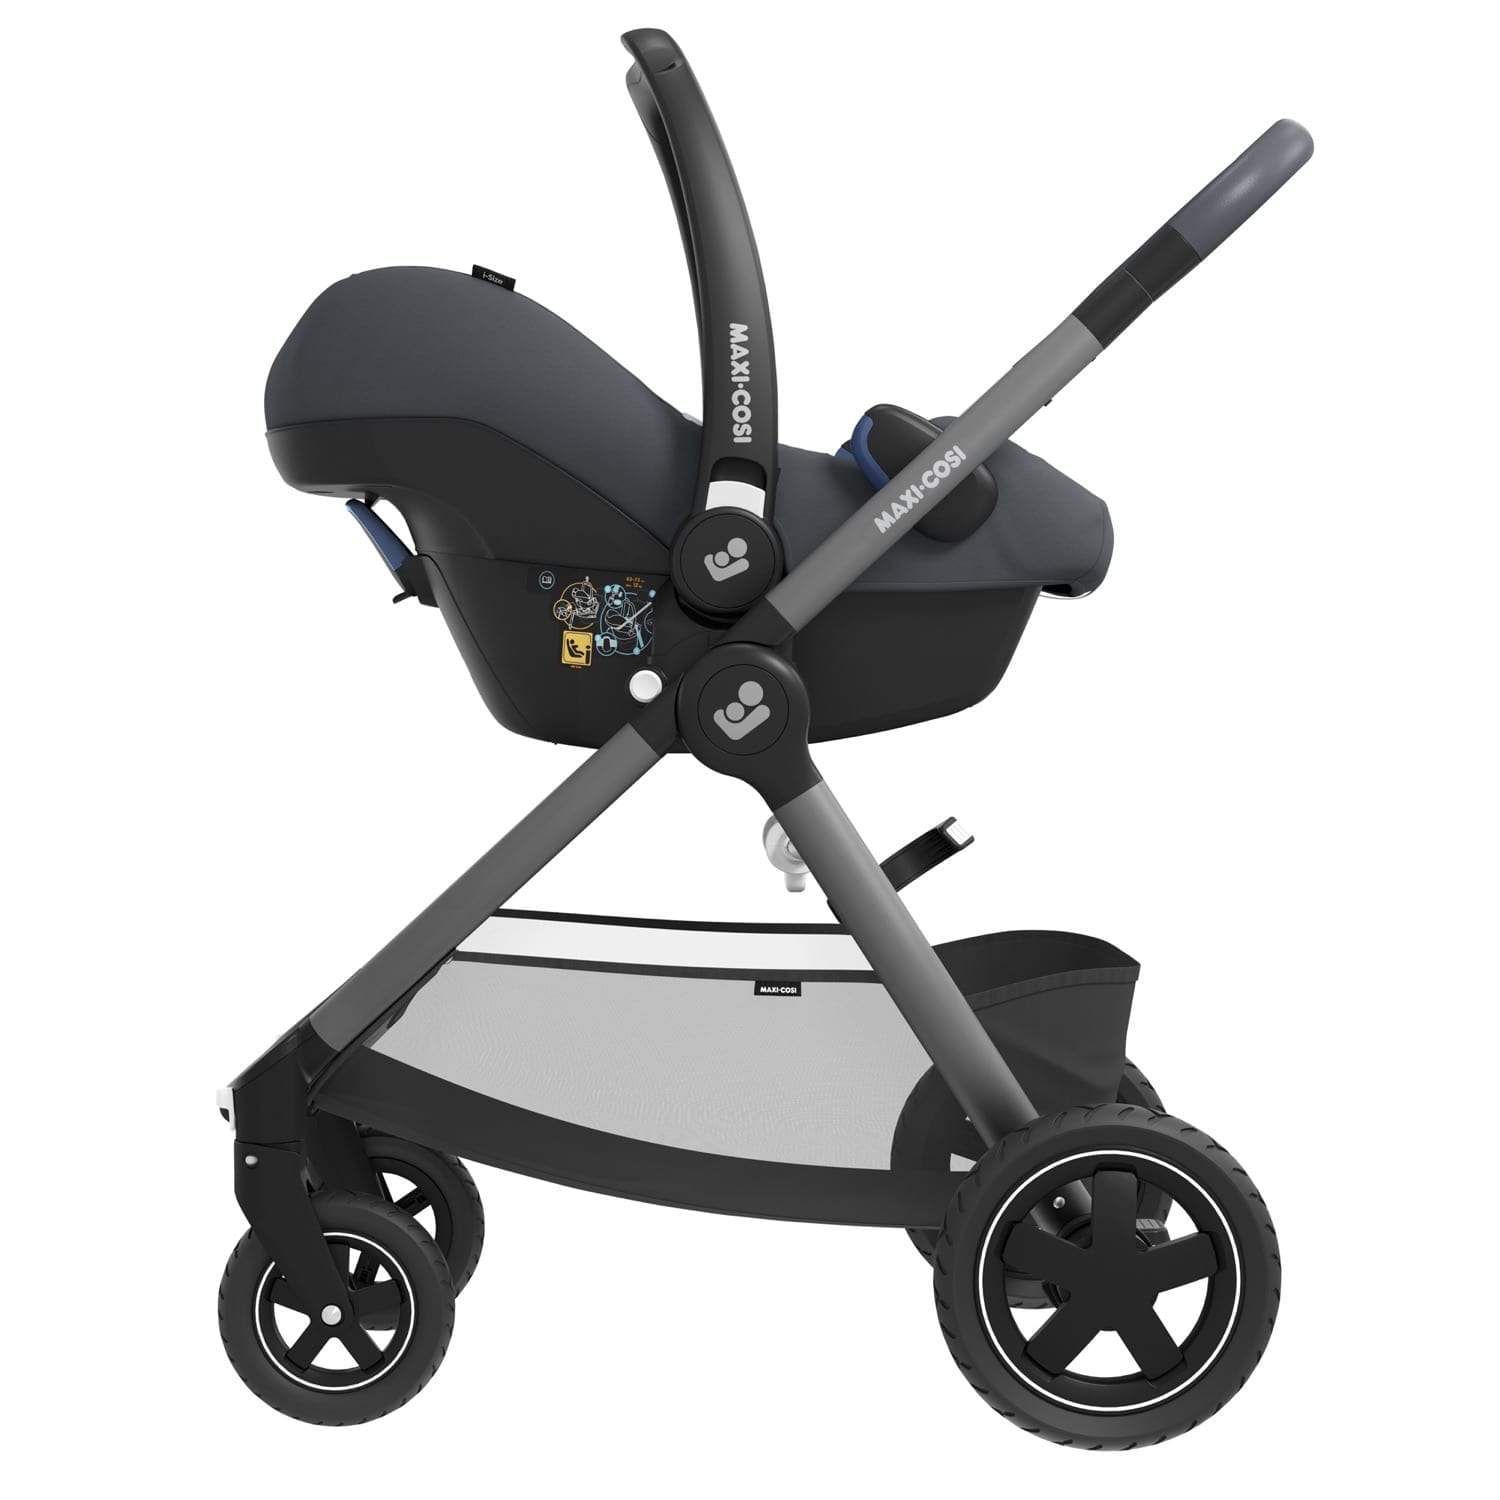 Maxi Cosi Rock i-Size Infant Car Seat- Essential Graphite product image